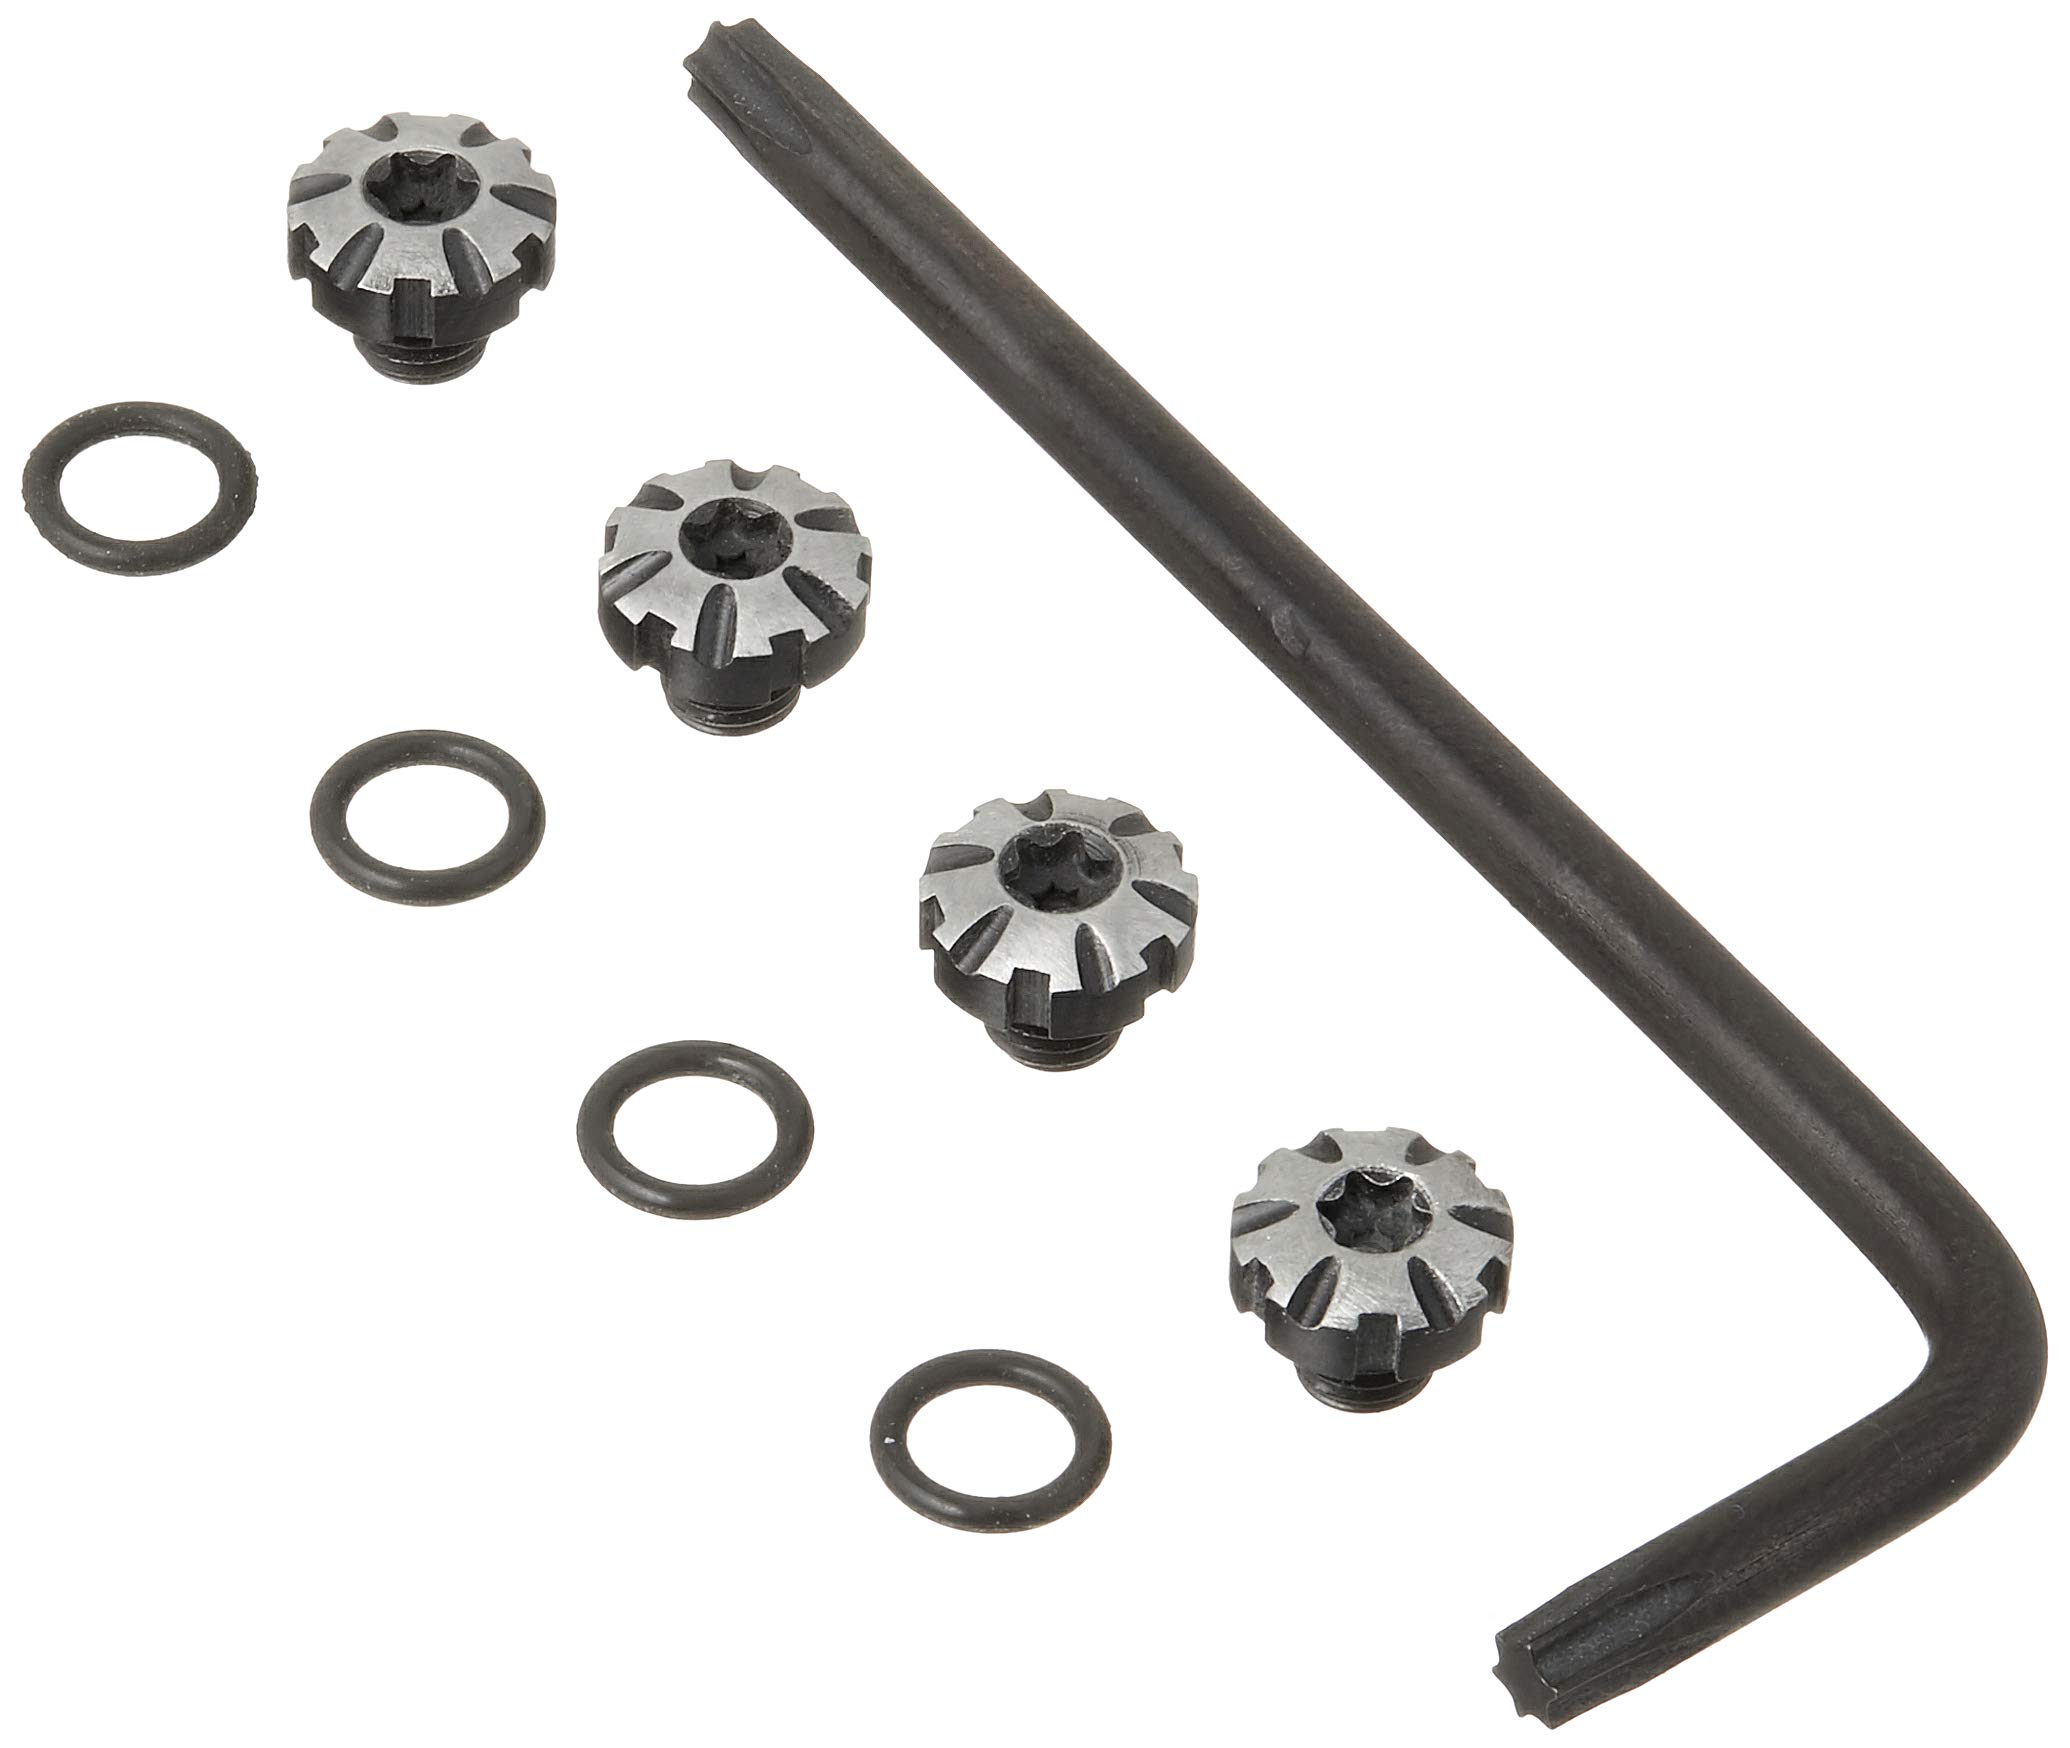 E Gun Grips 1911S-4-D Precision Milled Stainless Steel Grip Screw Set, Brushed Night